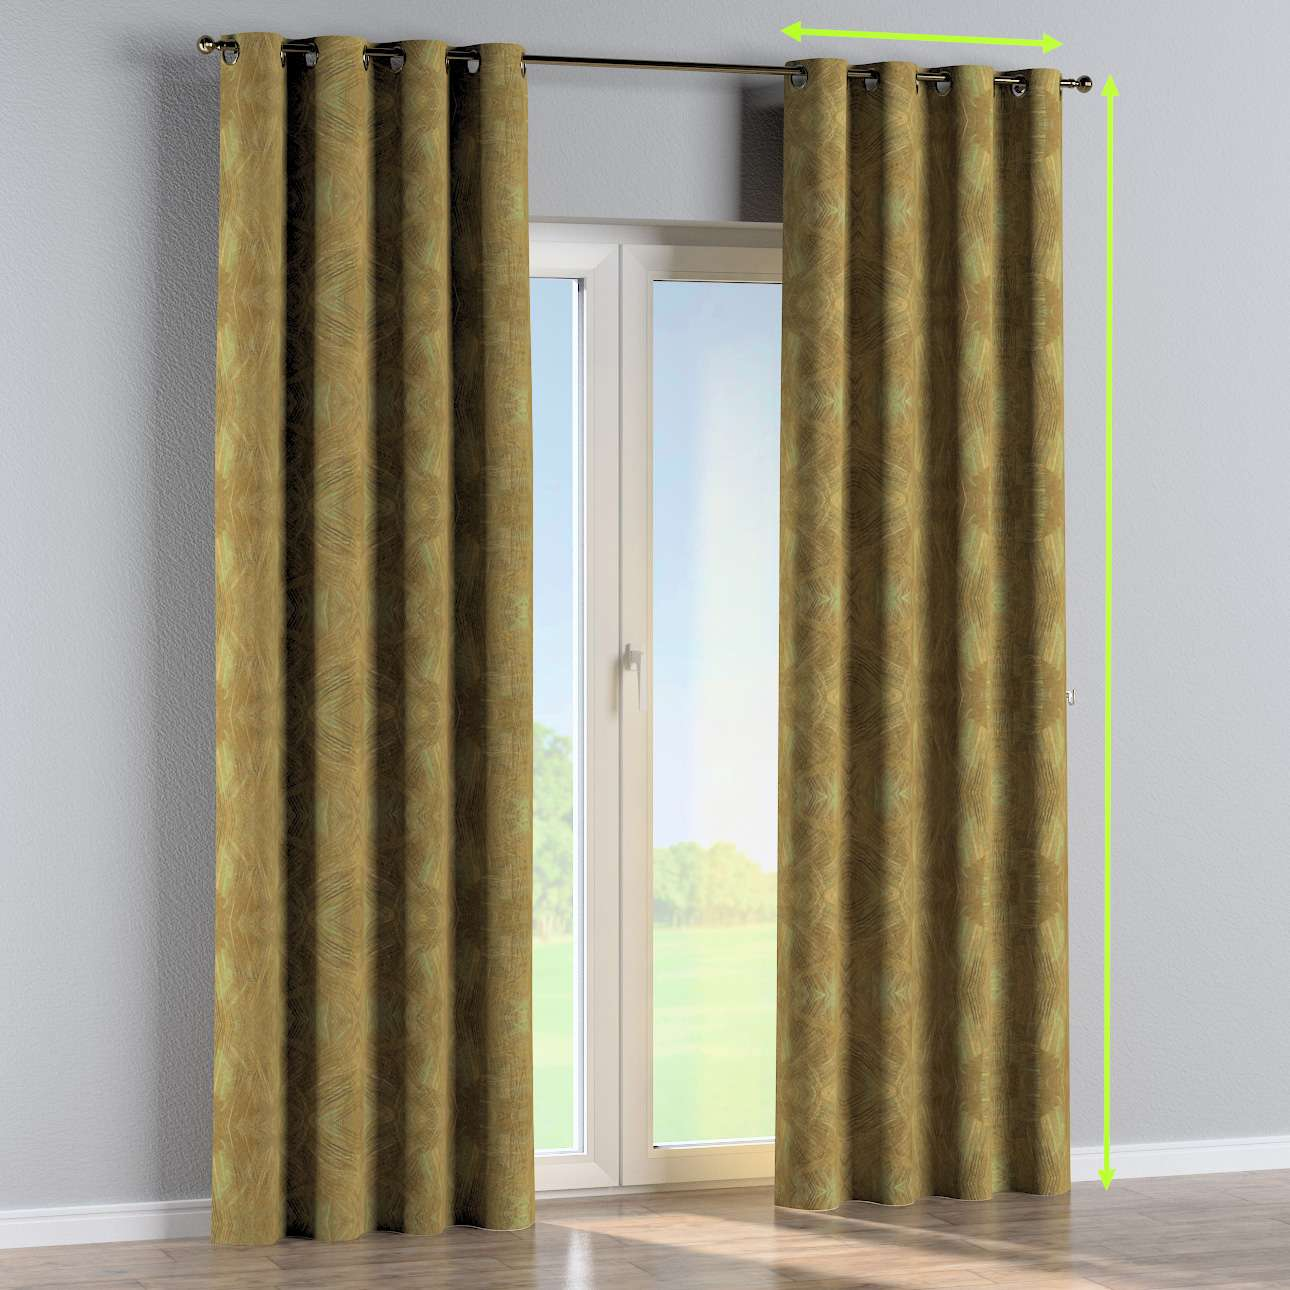 Eyelet curtain in collection SALE, fabric: 142-59